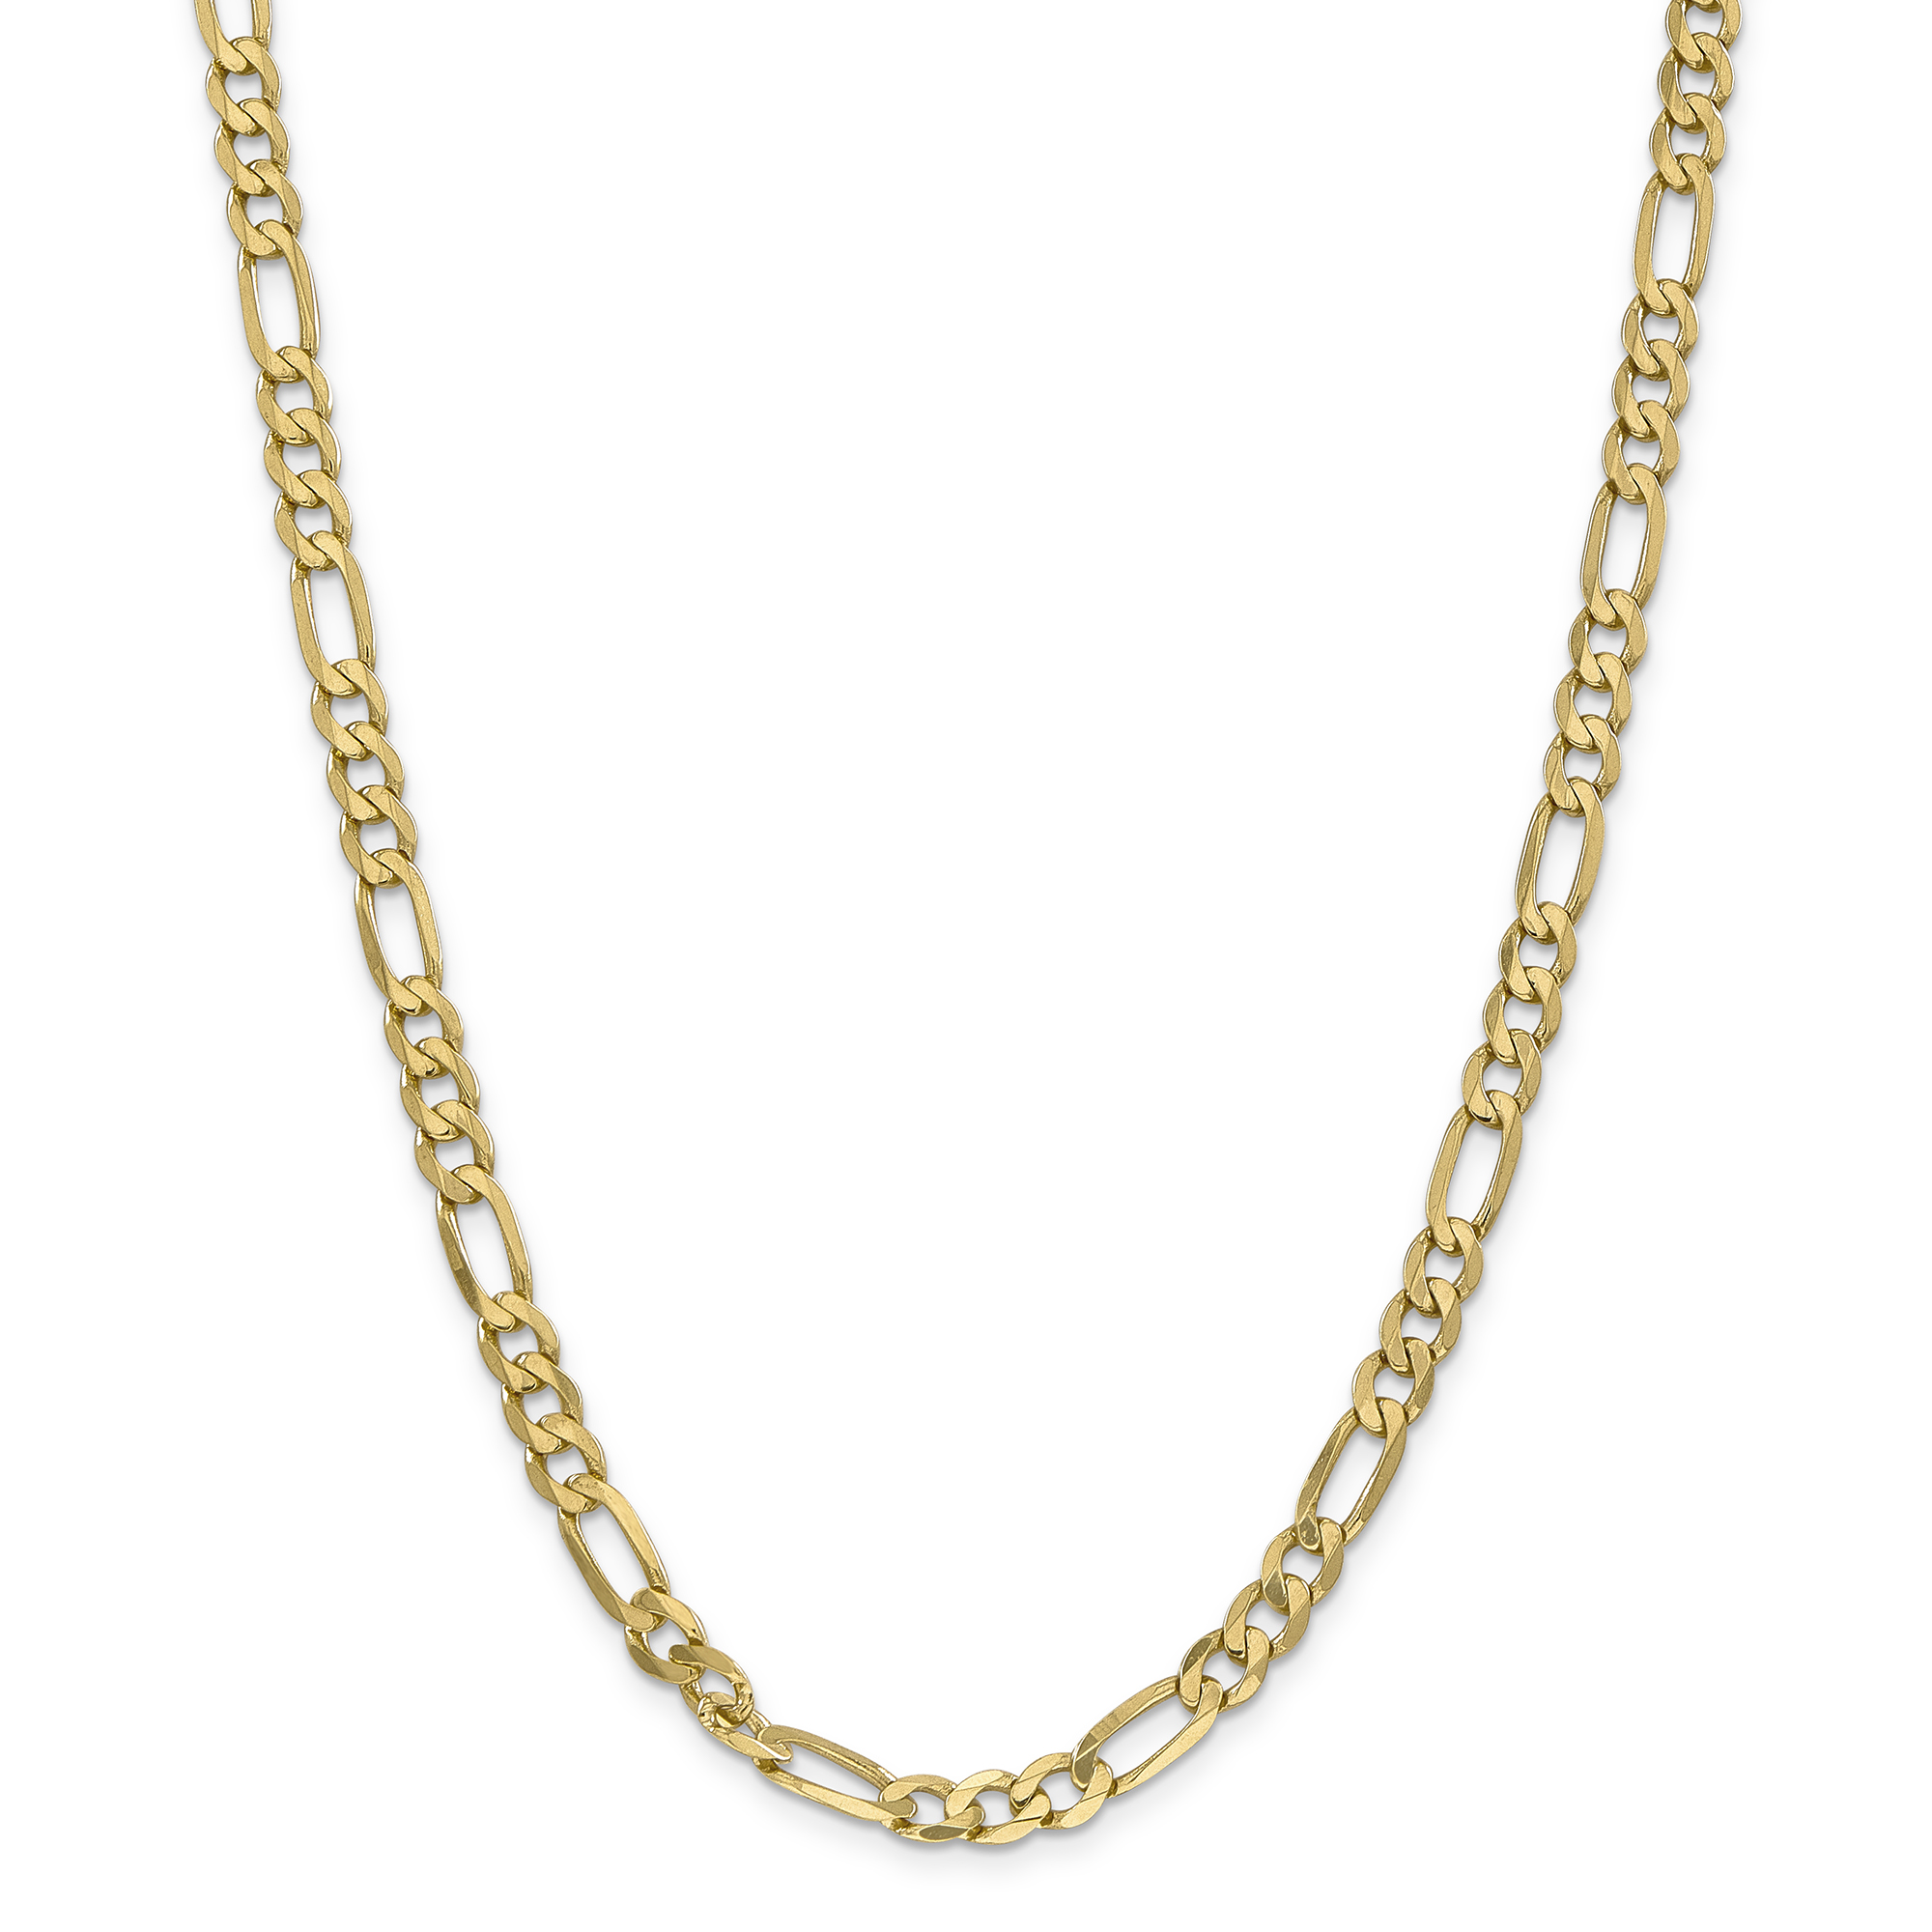 14k Yellow Gold 6.25mm Flat Link Figaro Chain Necklace 24 Inch Pendant Charm Fine Jewelry Gifts For Women For Her - image 5 de 5